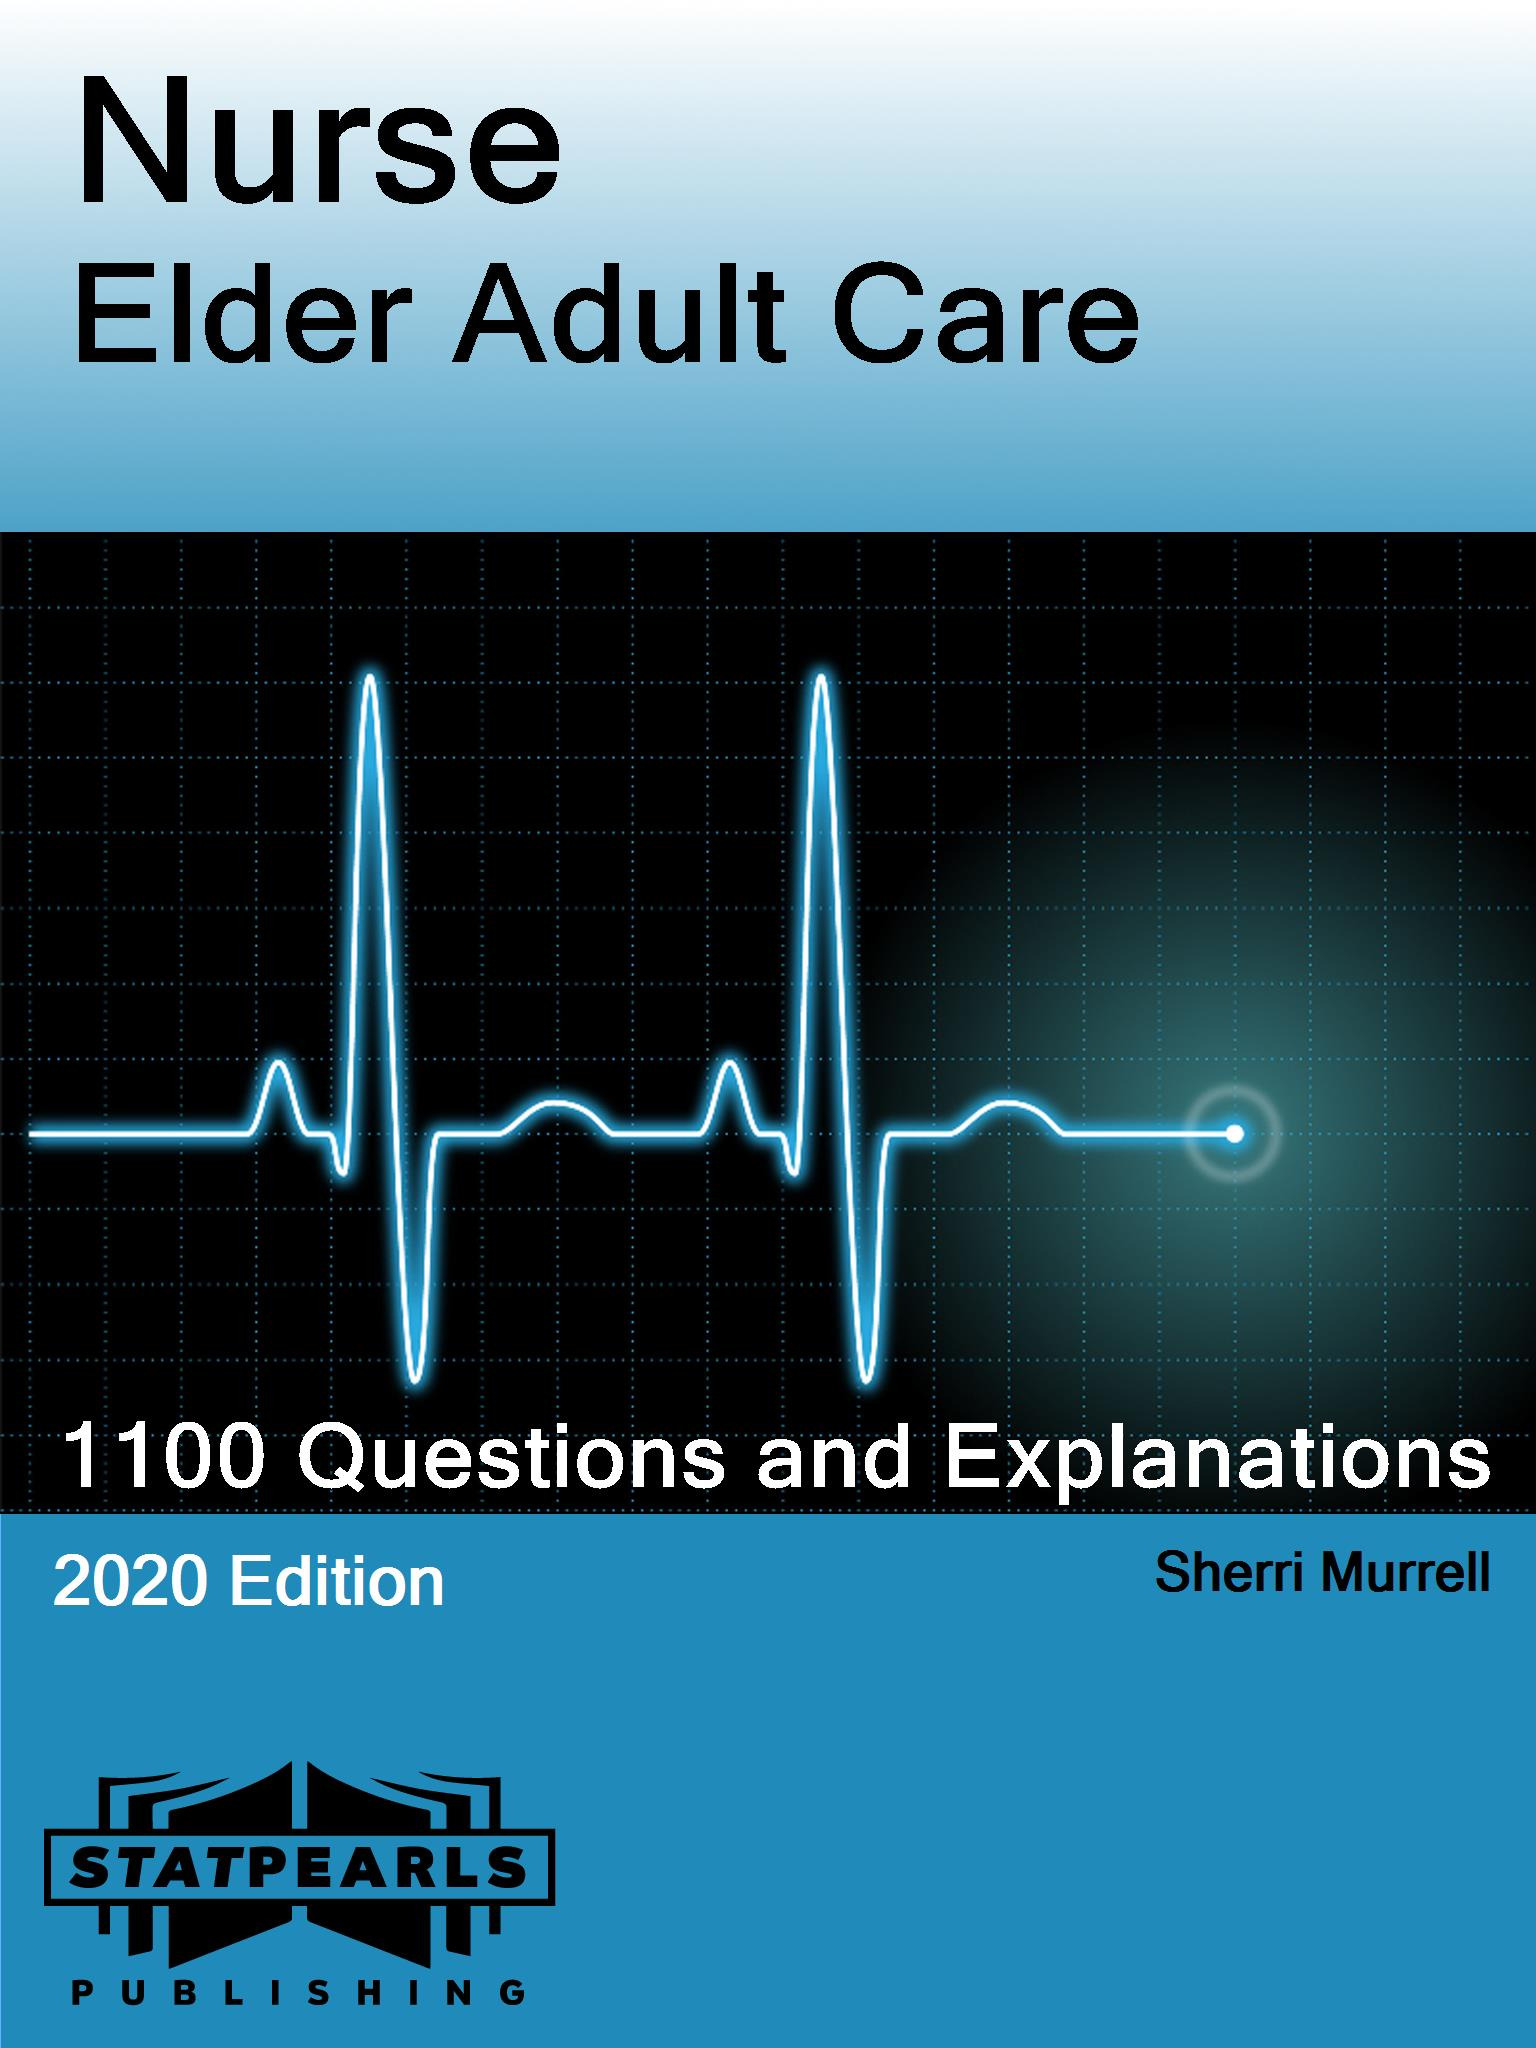 Nurse Elder Adult Care